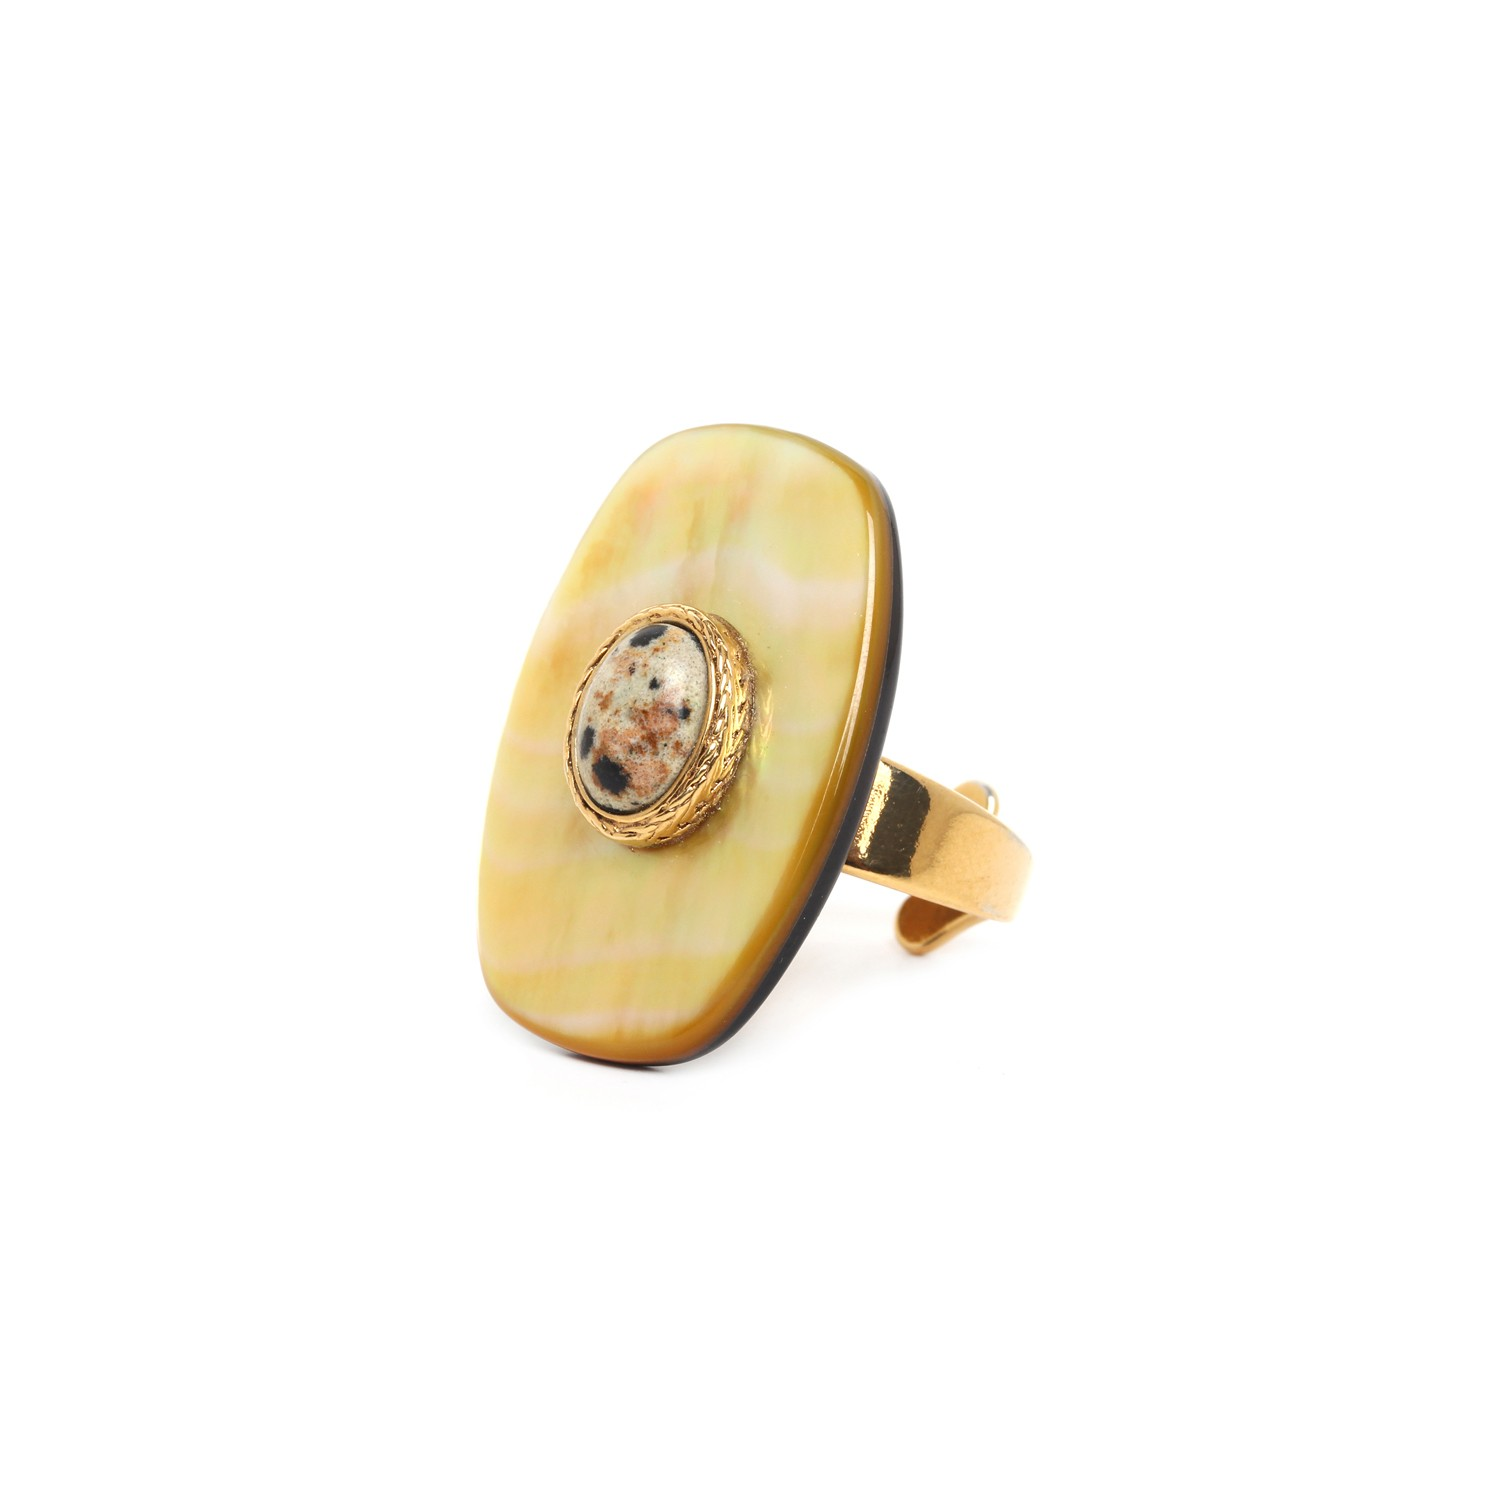 TIZI OUZOU shield ring